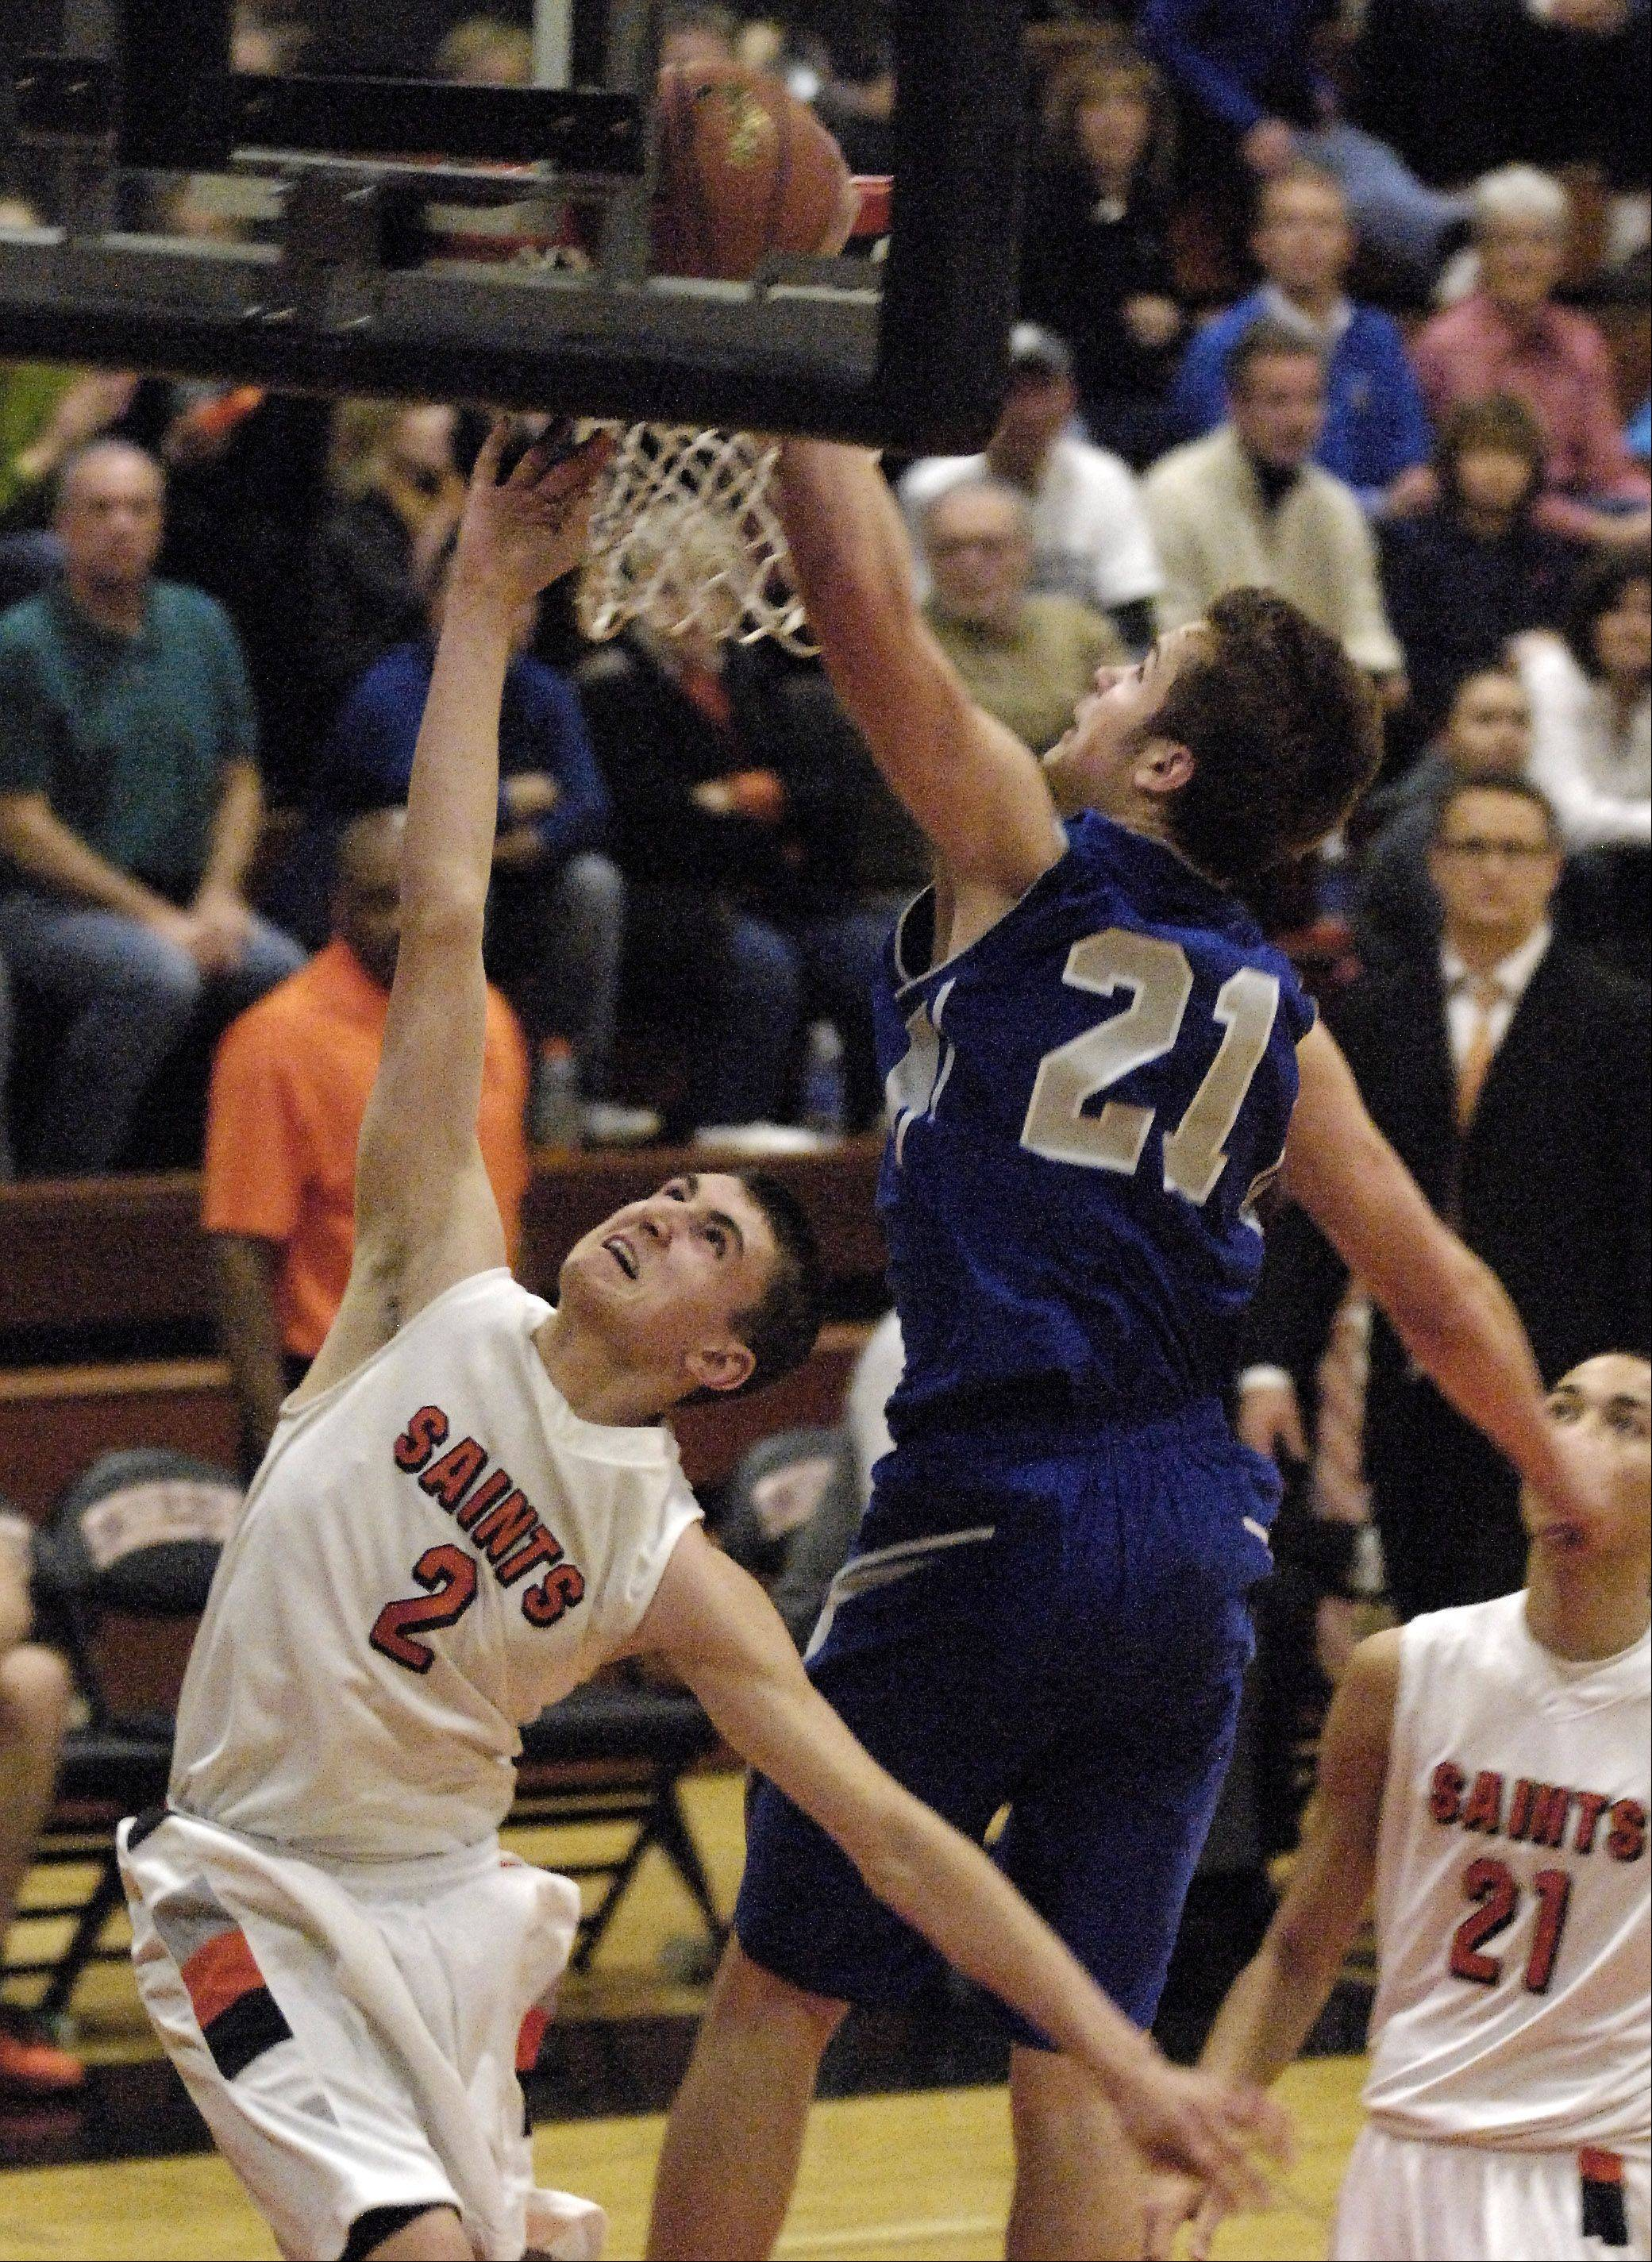 Geneva's Mike Trimble hustles back and gets a block on a breakaway by St. Charles East's Dom Adduci.